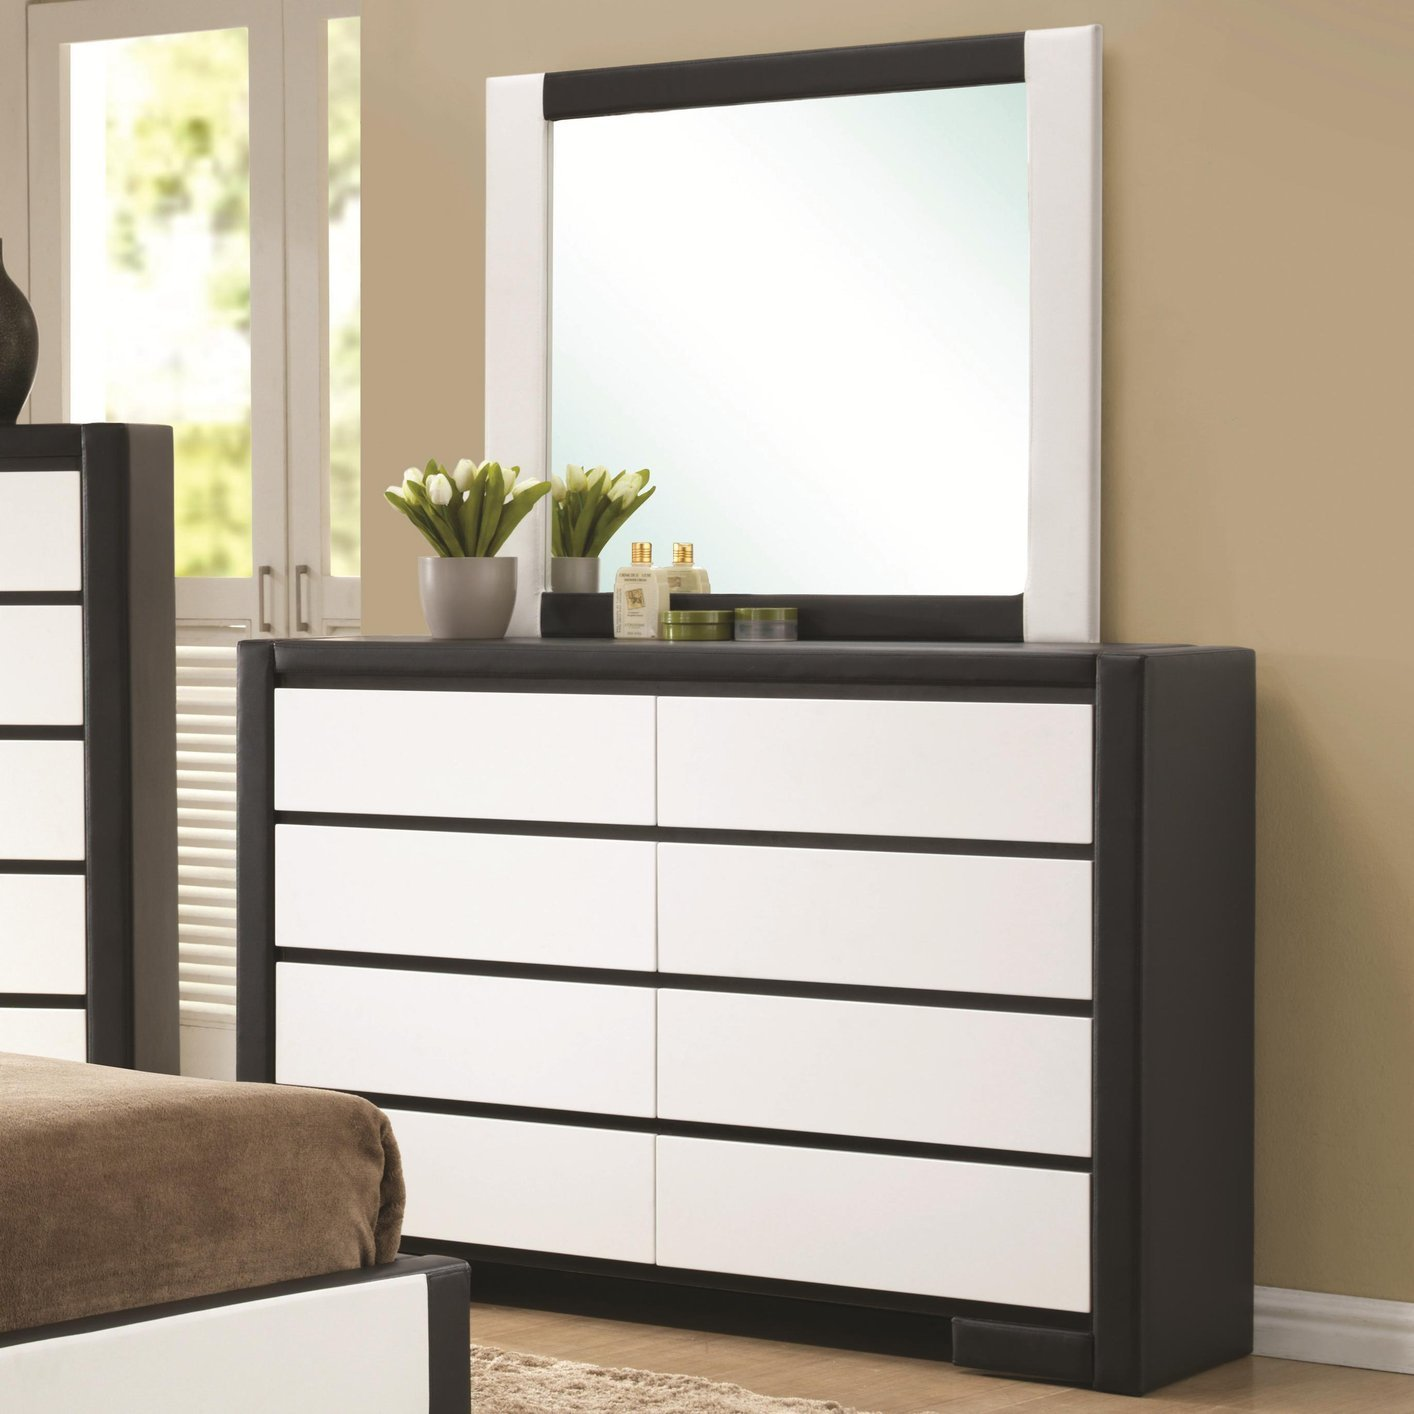 by italia leather cattelan furniture room dyno service dresser d